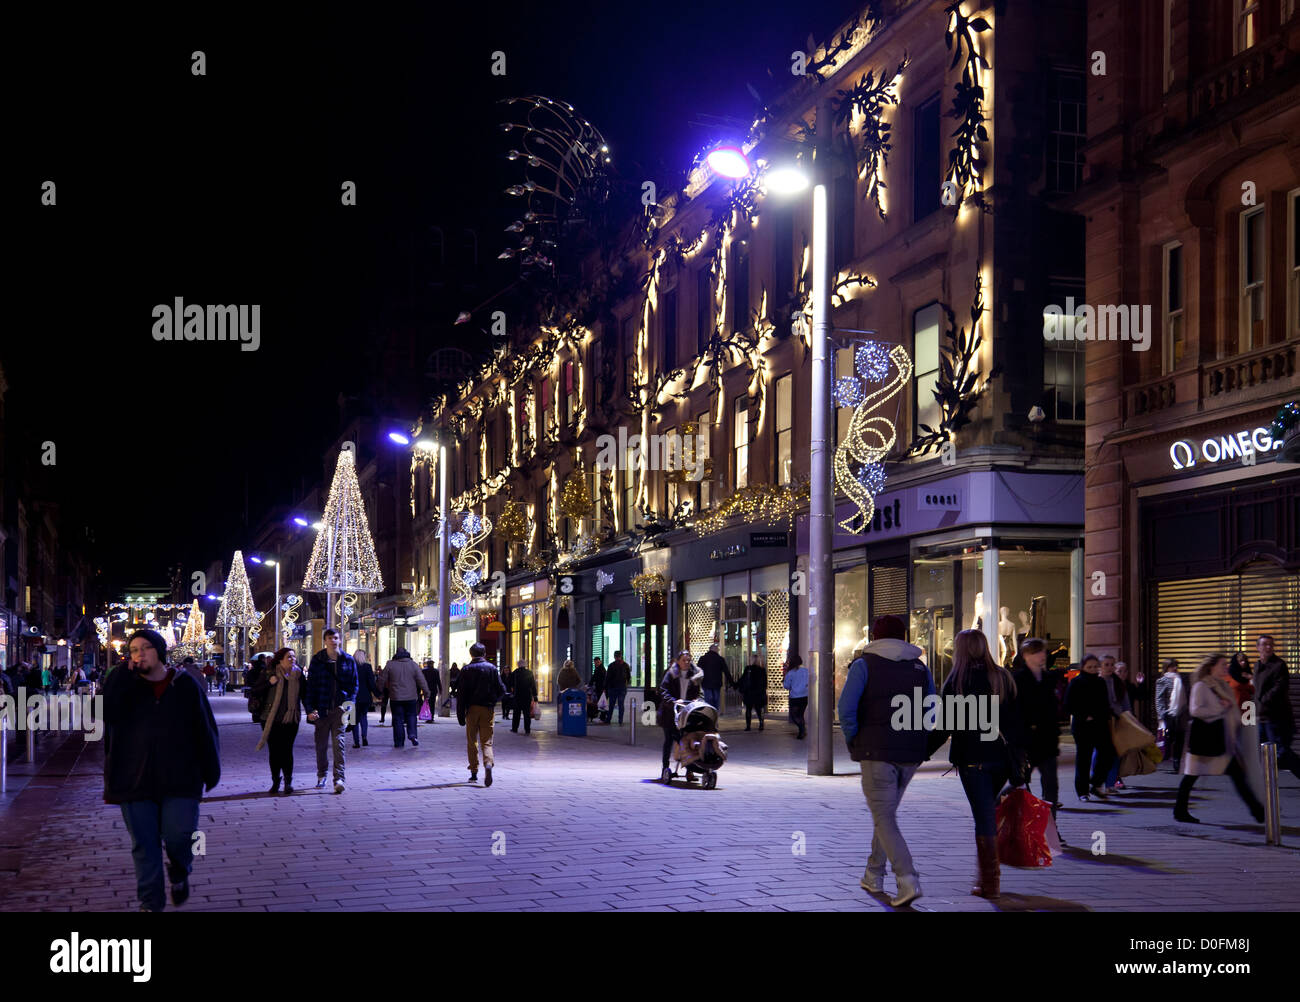 Buchanan Street Glasgow at night - November. Workers and shoppers under blue lights. Princes Square. Christmas lights. - Stock Image